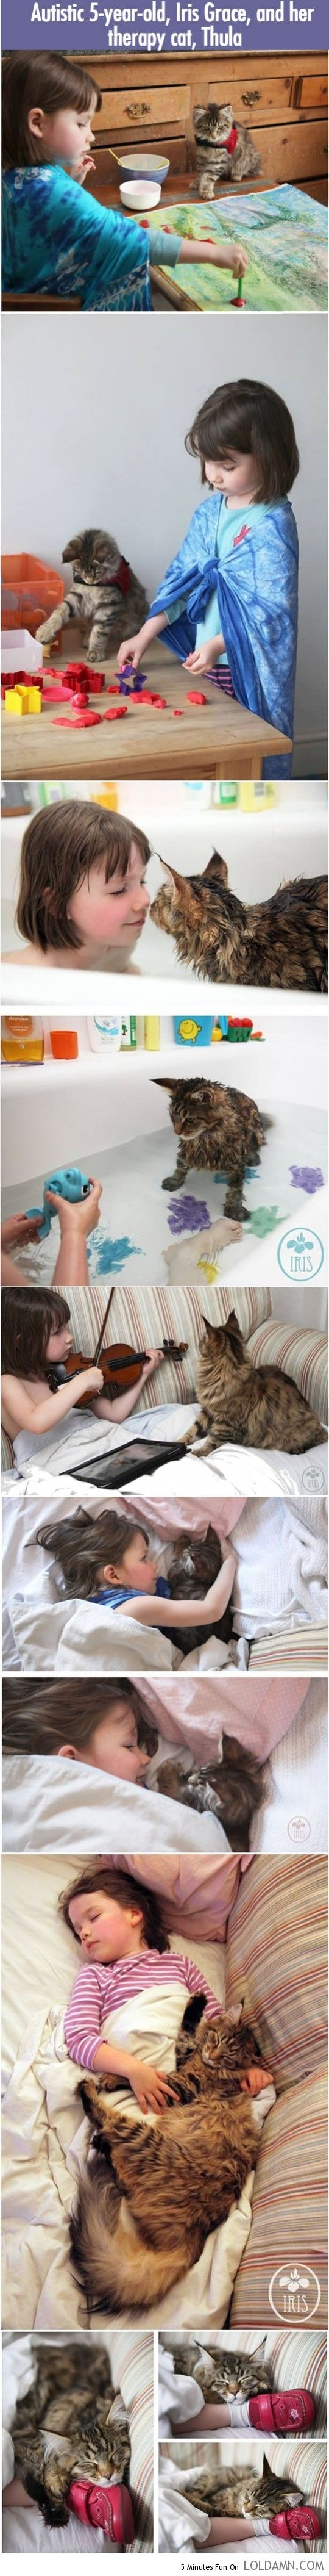 Amazingly cute: Autistic girl and her therapy cat. This is possibly the most adorable thing I've seen!